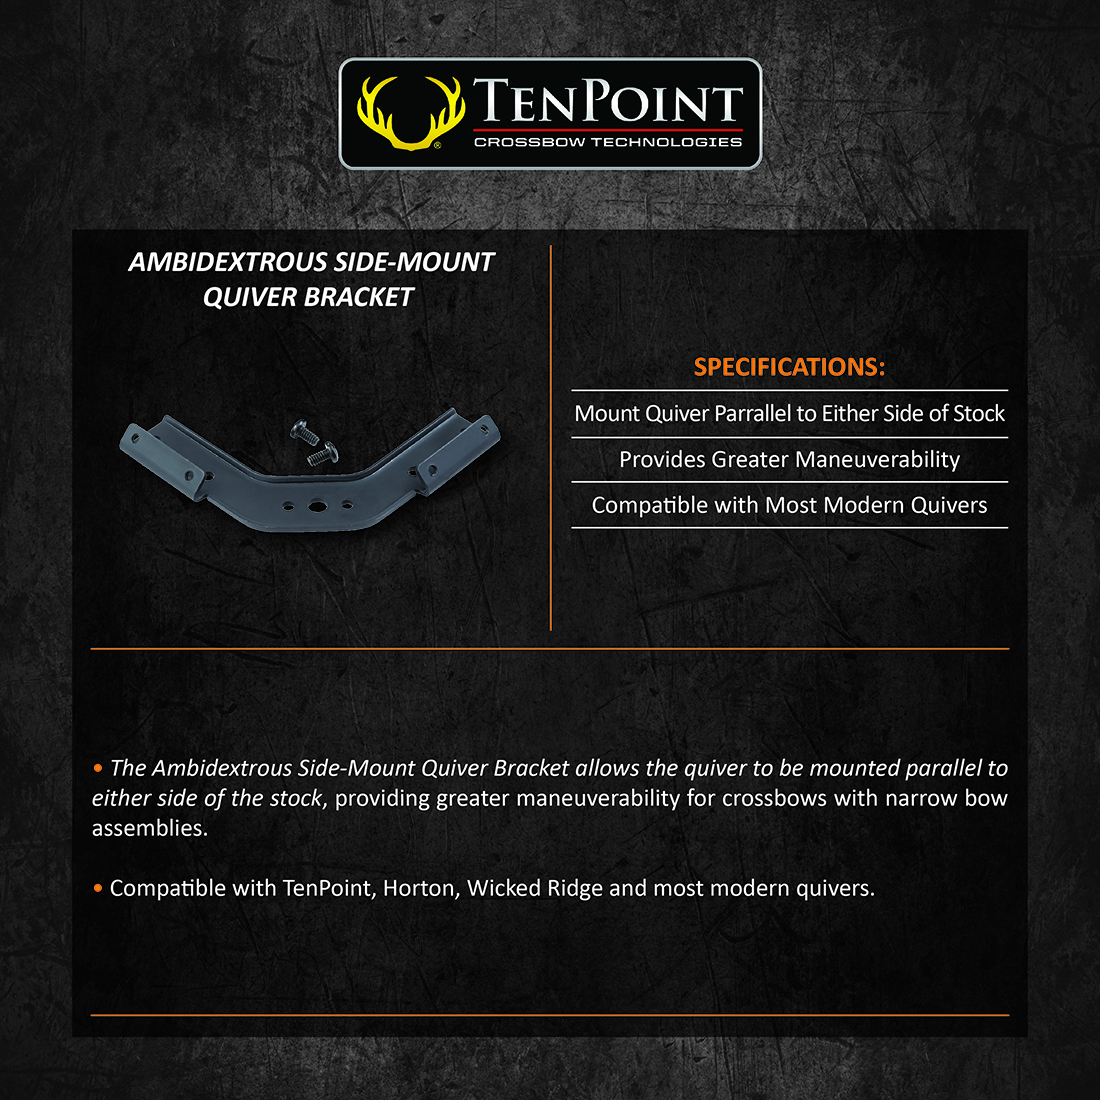 TenPoint_Ambidextrous_Side_Mount_Quiver_Bracket_Product_Description